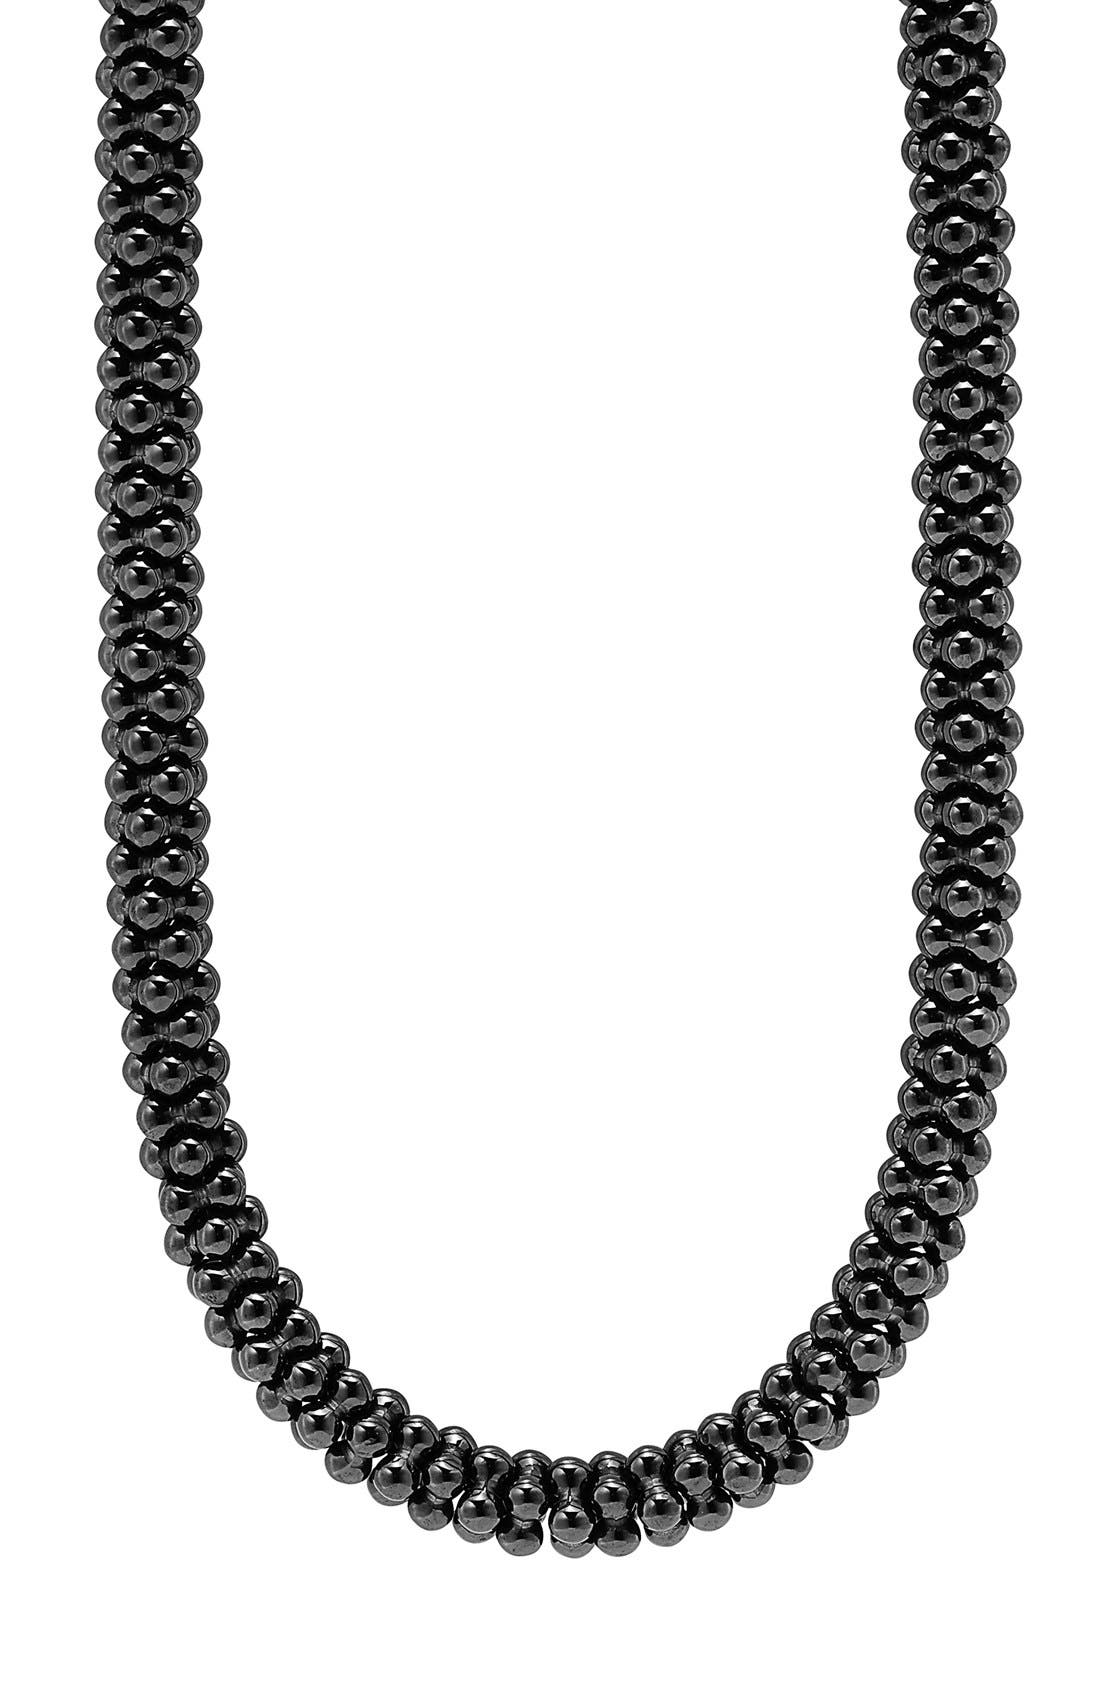 'Black Caviar' 7mm Beaded Necklace,                             Alternate thumbnail 2, color,                             Black Caviar